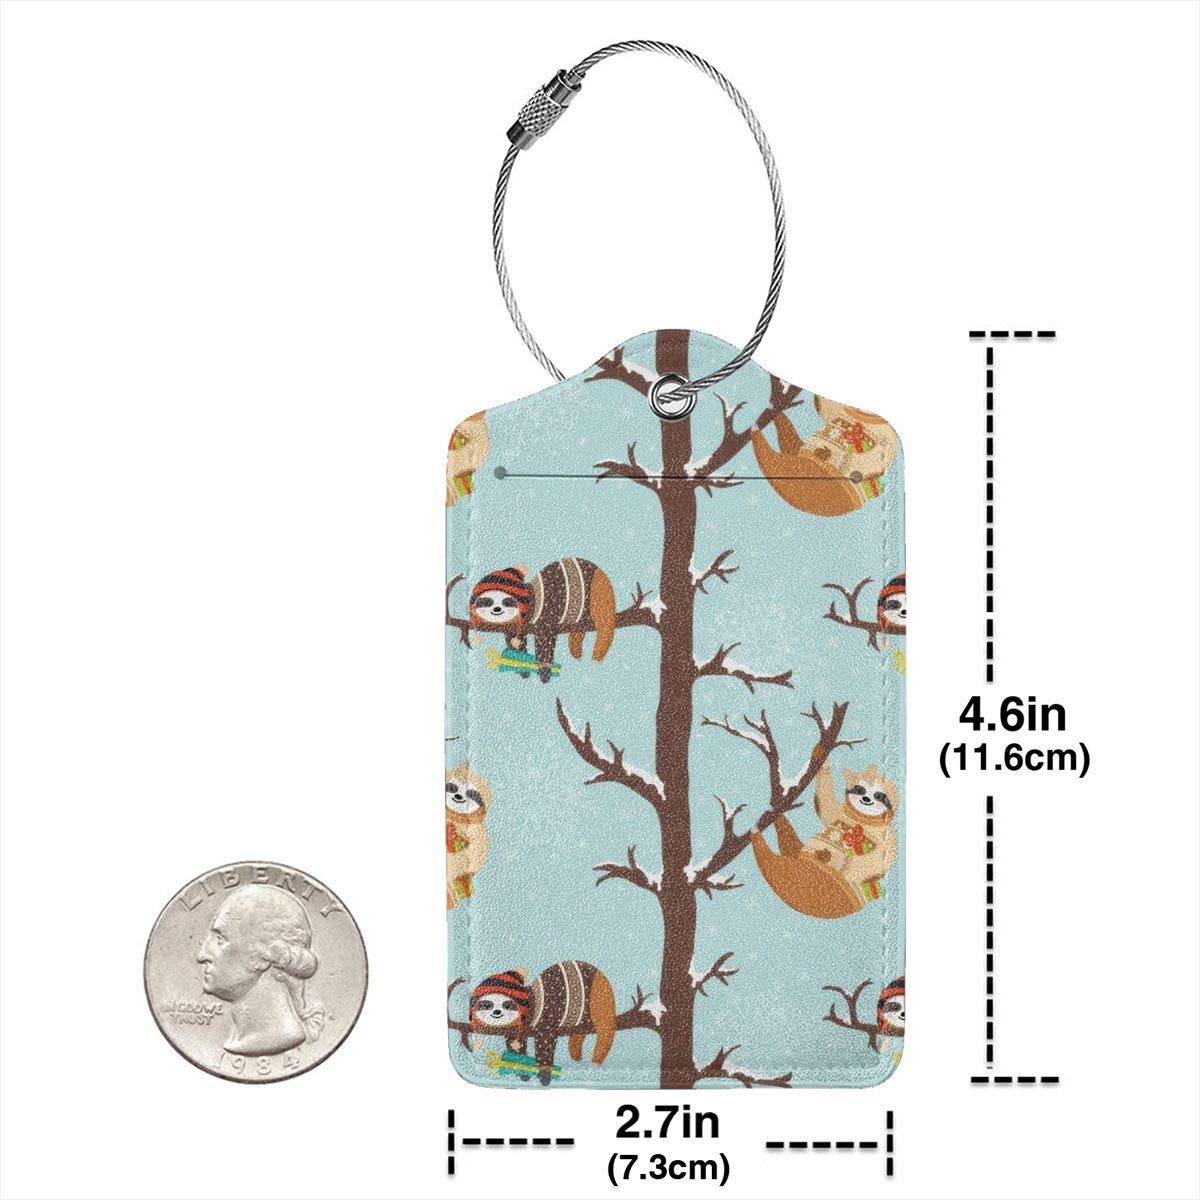 Cute Baby Sloths Luggage Tag Label Travel Bag Label With Privacy Cover Luggage Tag Leather Personalized Suitcase Tag Travel Accessories